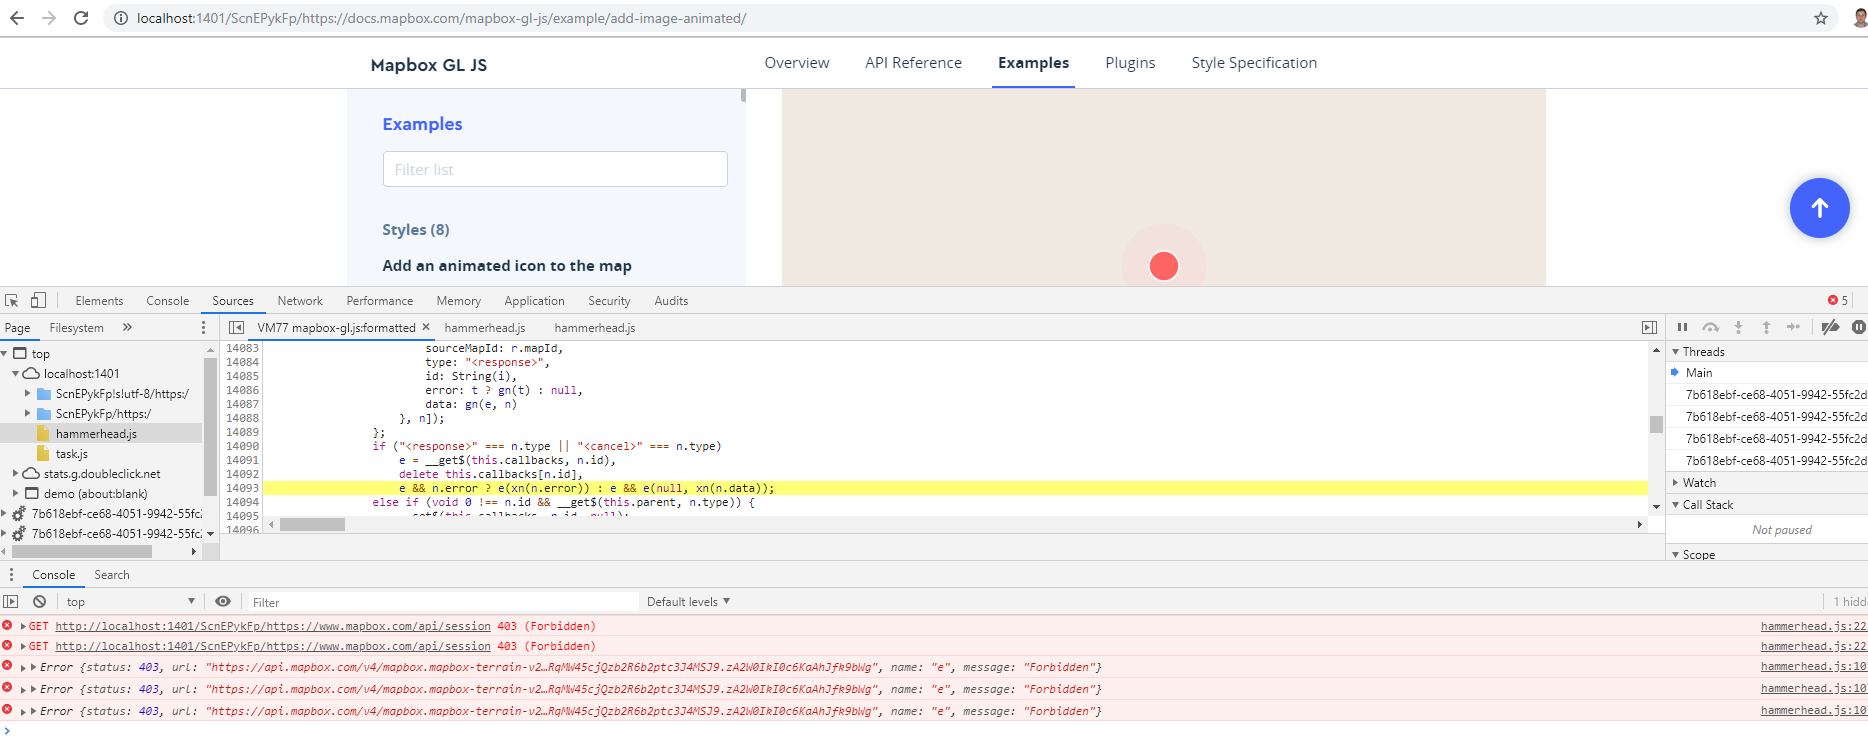 Tetcases are failing due to creating mapbox Icons · Issue #2044